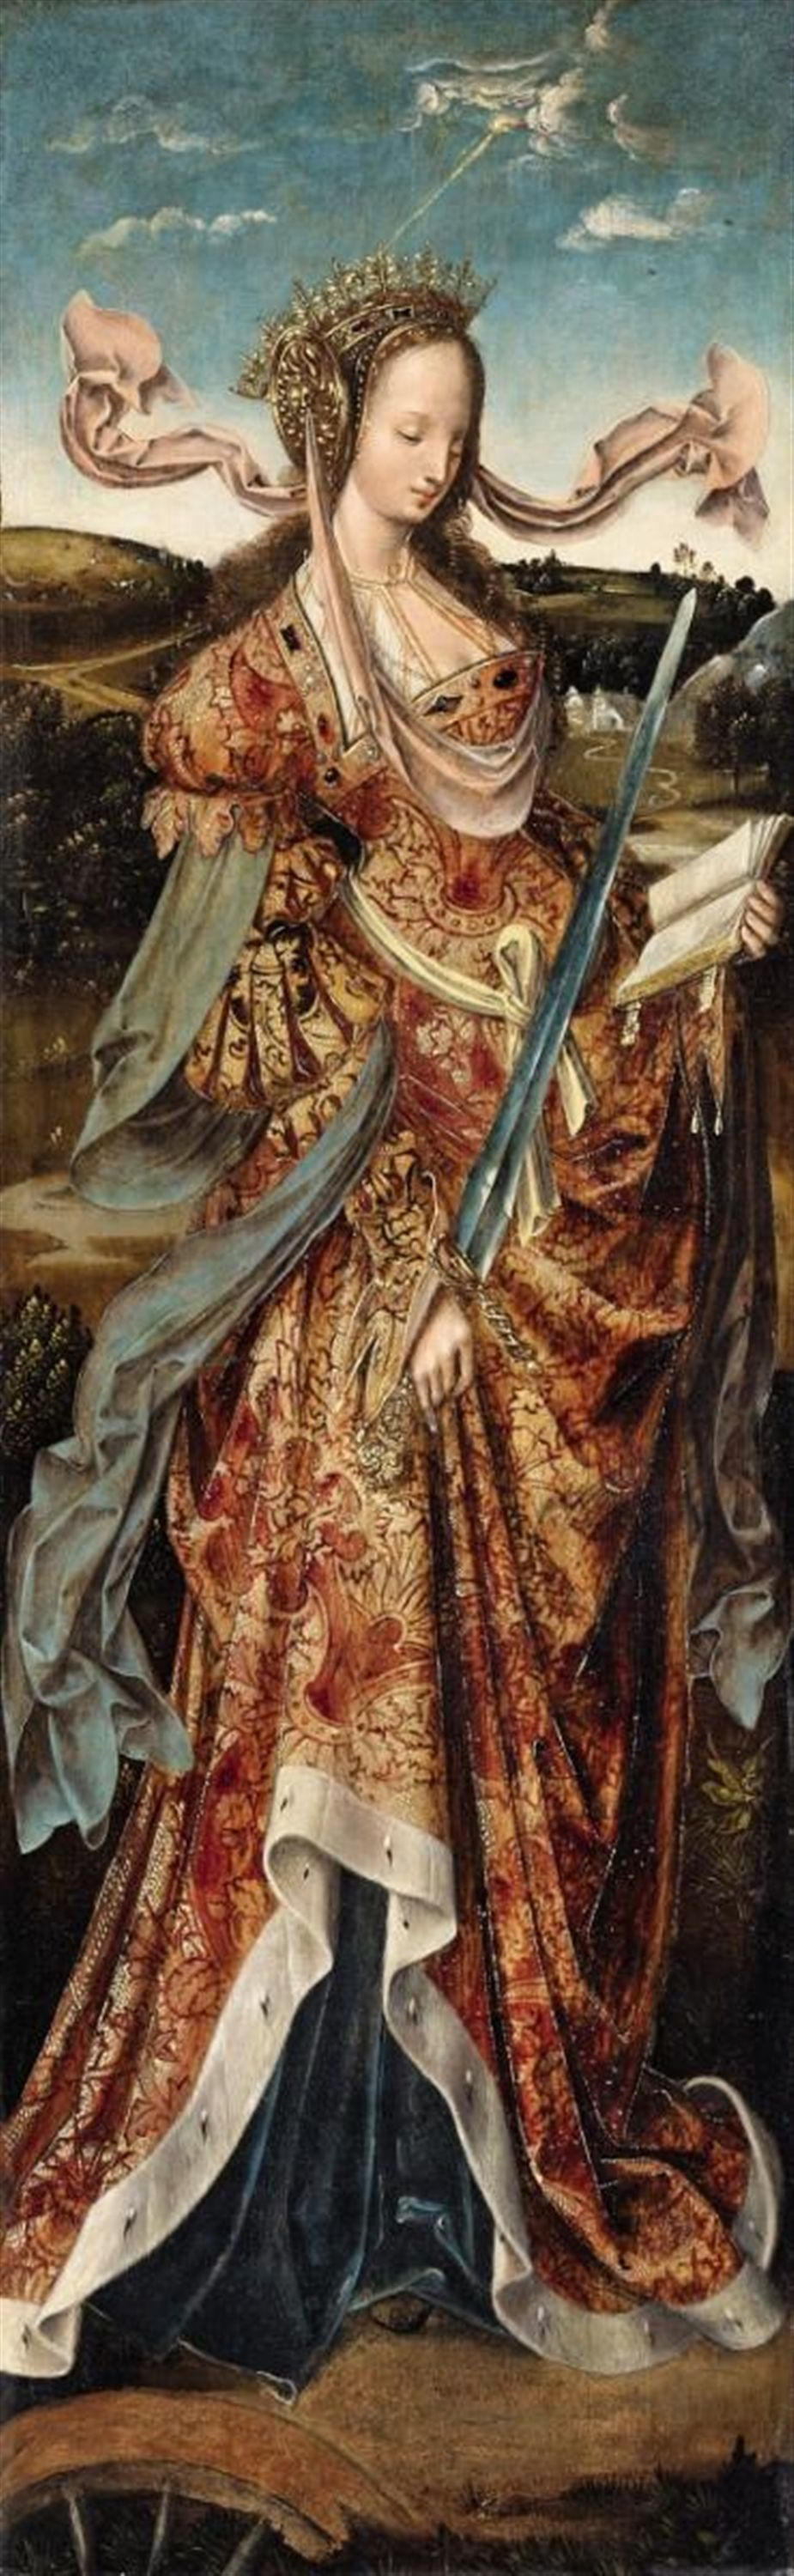 Cornelis Engebrechtsz, Saint Barbara and Saint Catherine,( Auction 1029 Old Masters and 19th Century, Lot 1018) ,* Believed to be a triptych of the two saints by the Netherlands artist. 1500's painting.